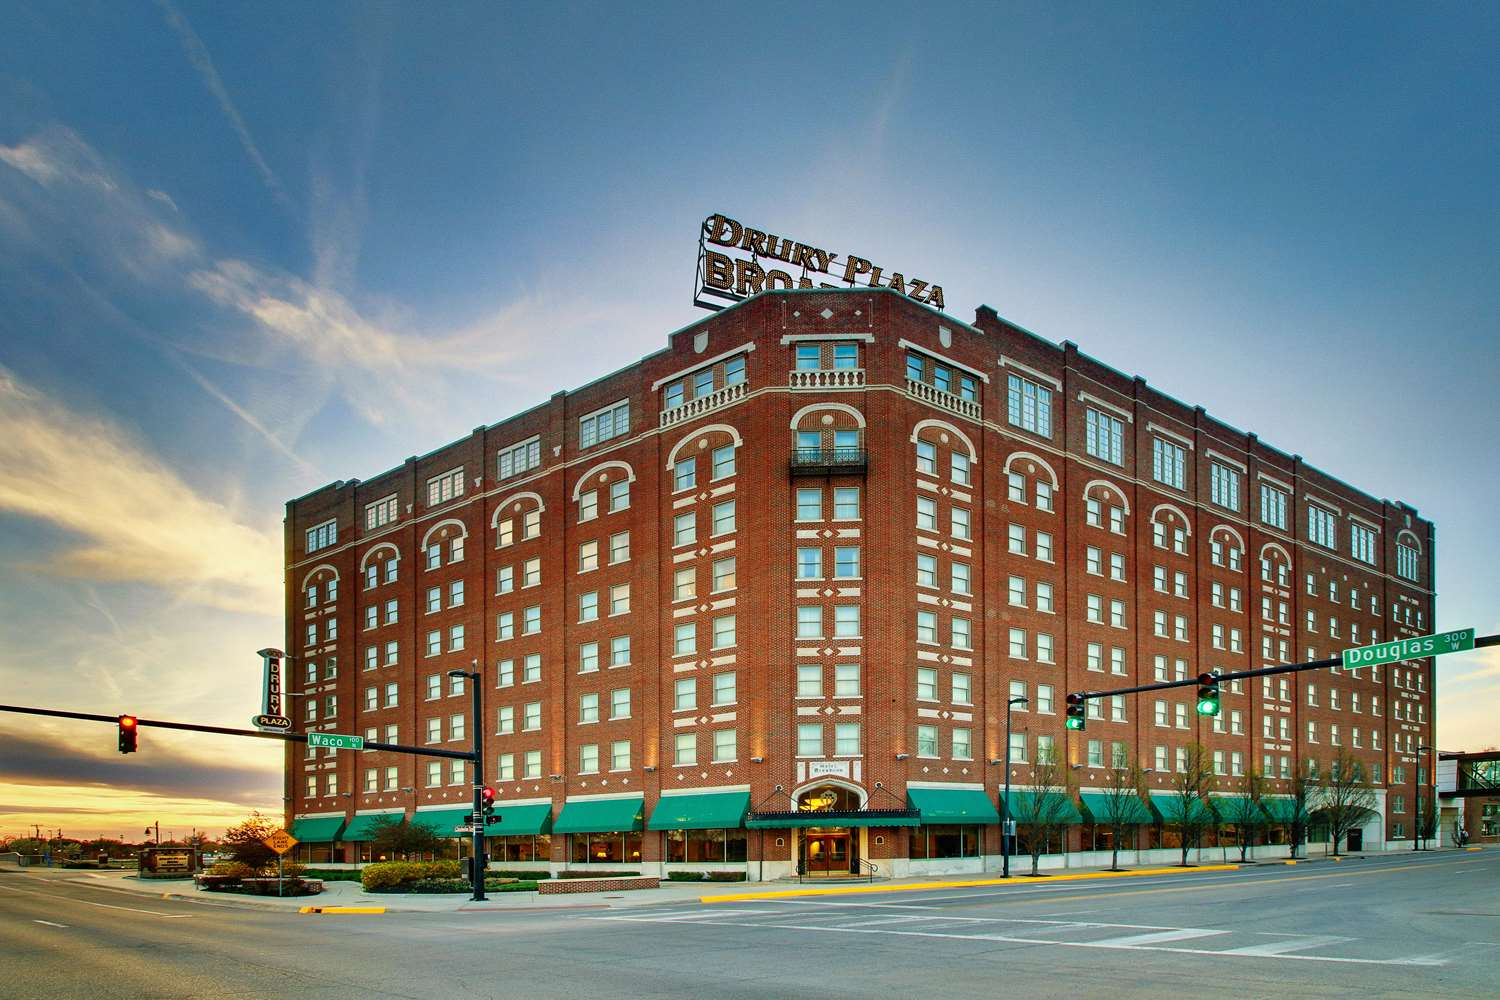 Drury Plaza Broadview Hotel Wichita